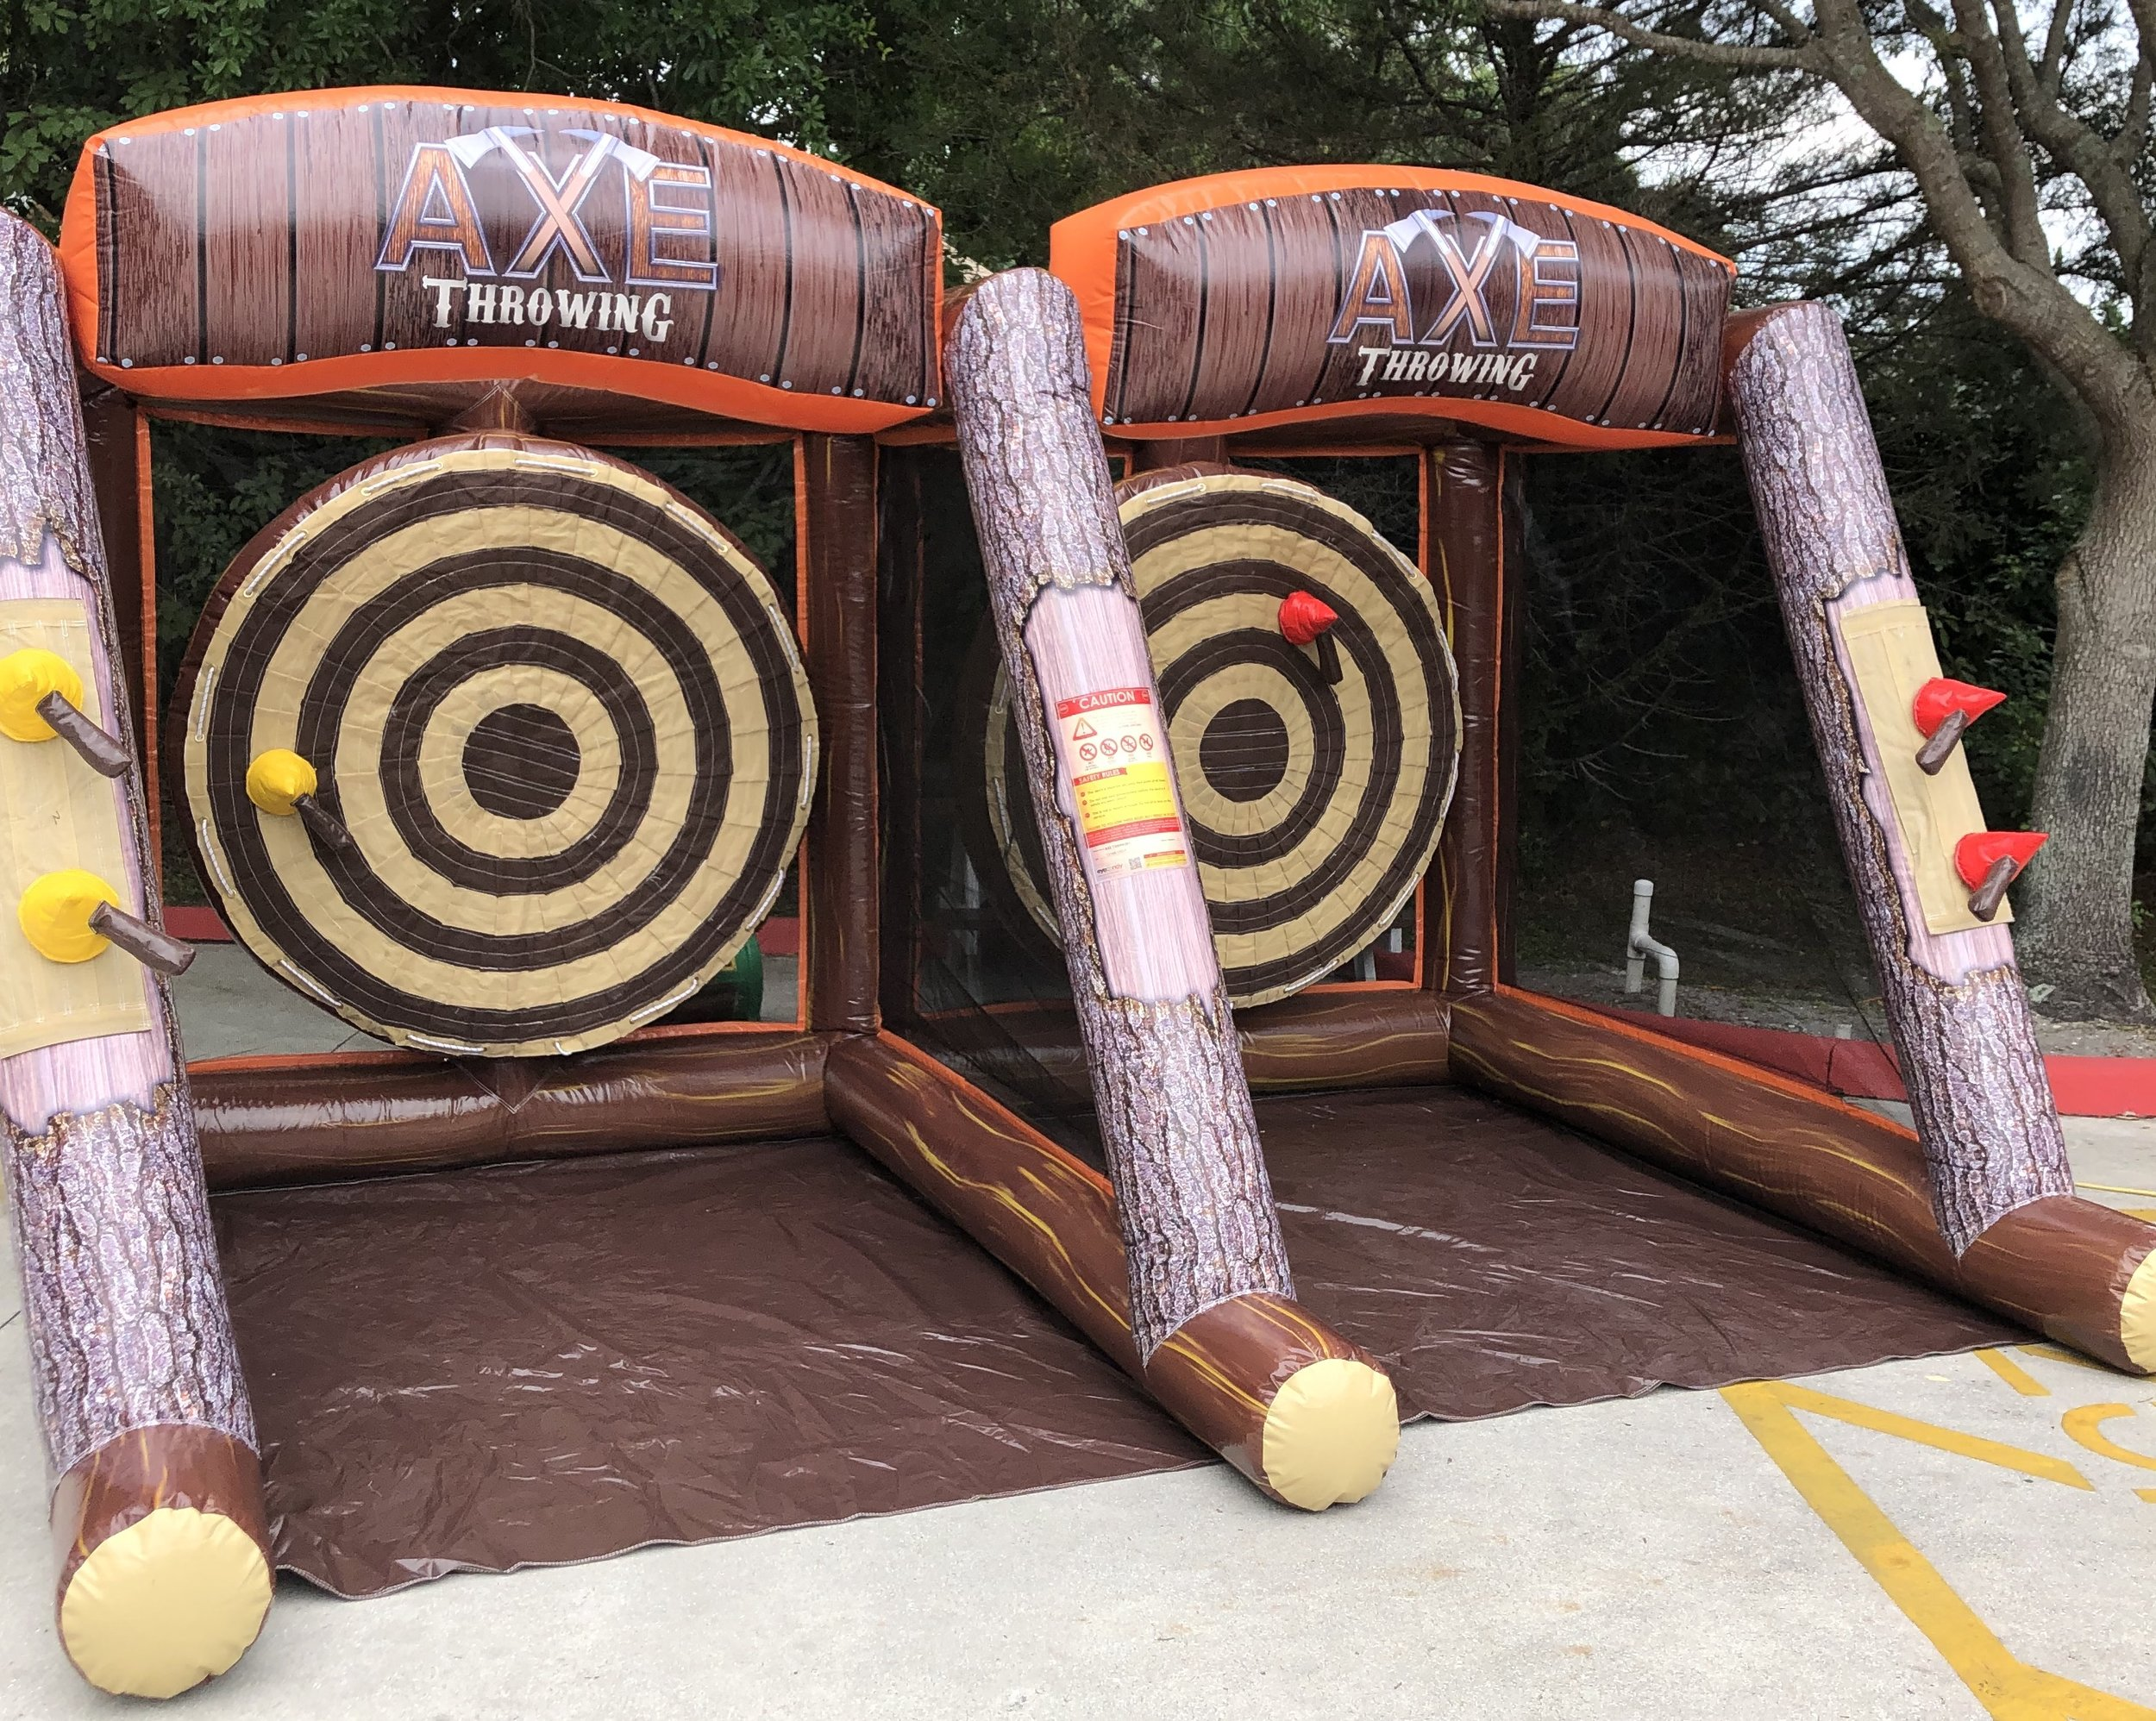 axethrowing-lumberjack-inflatablegames-partyrental-jupiterbouncehouse-wellingtonwaterslides-westpalmrockwalls-stuart.jpg